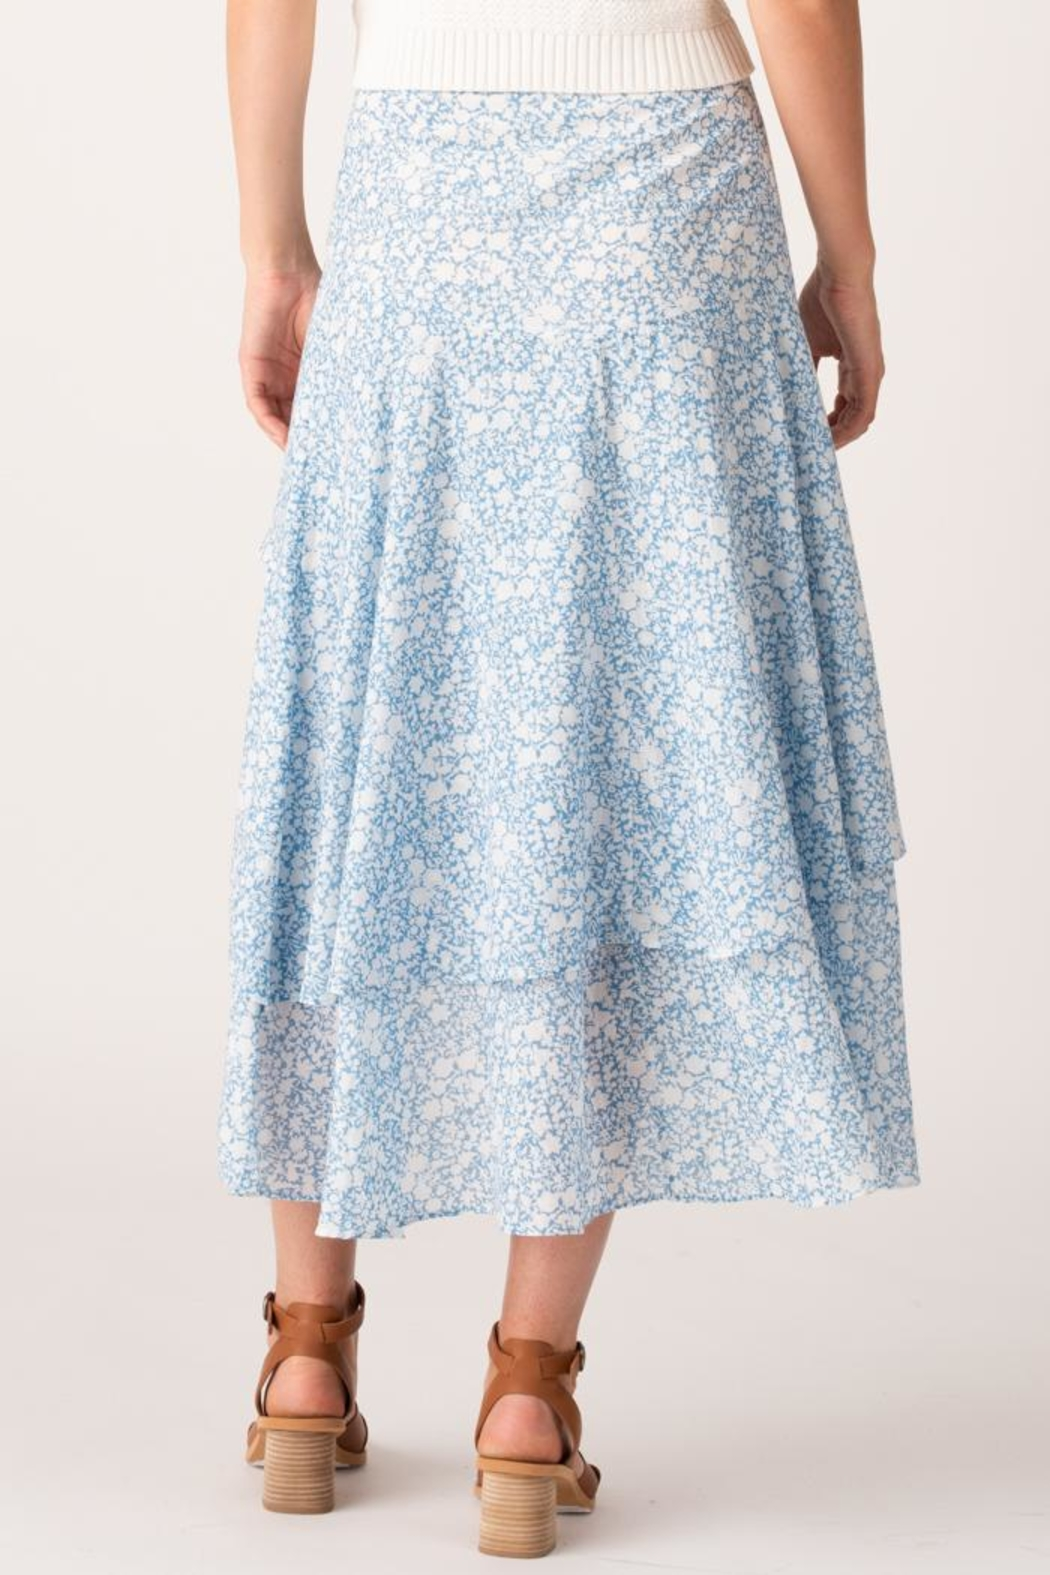 Margaret O'Leary Sonia Tiered Skirt - Side Cropped Image